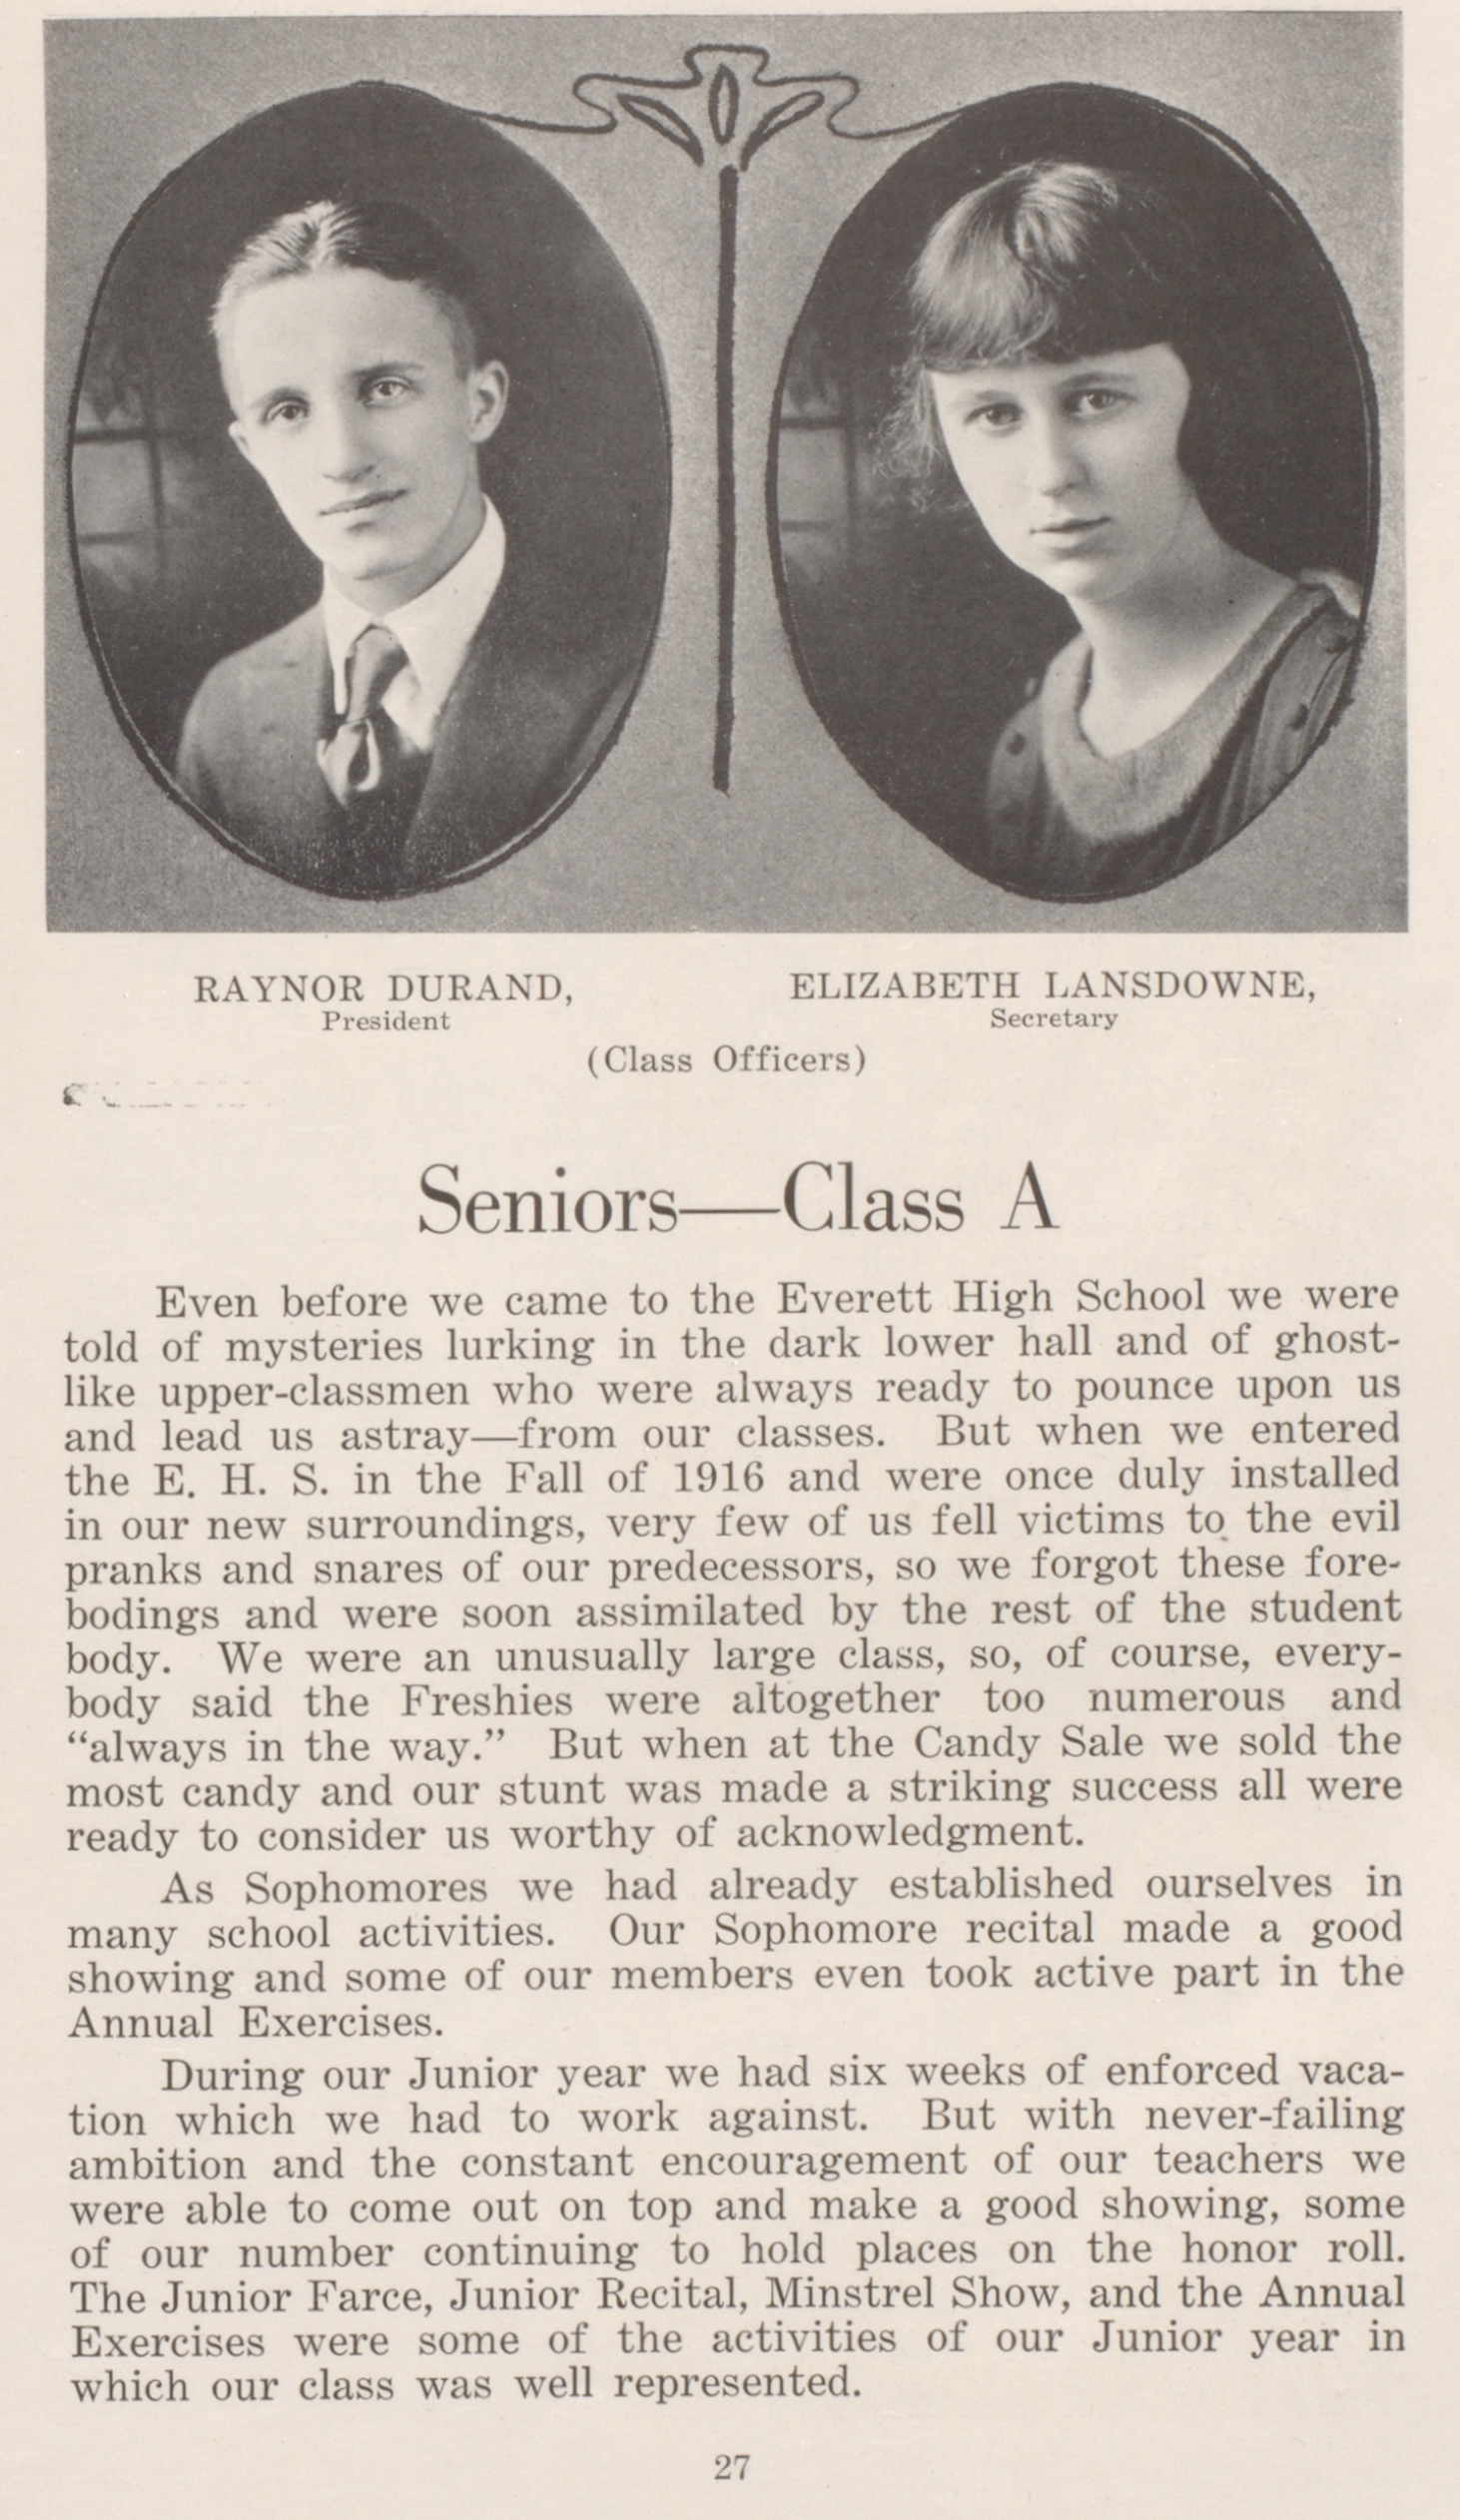 Senior Class A's Statement - a full page of text with two portraits on the top - one boy and one girl.